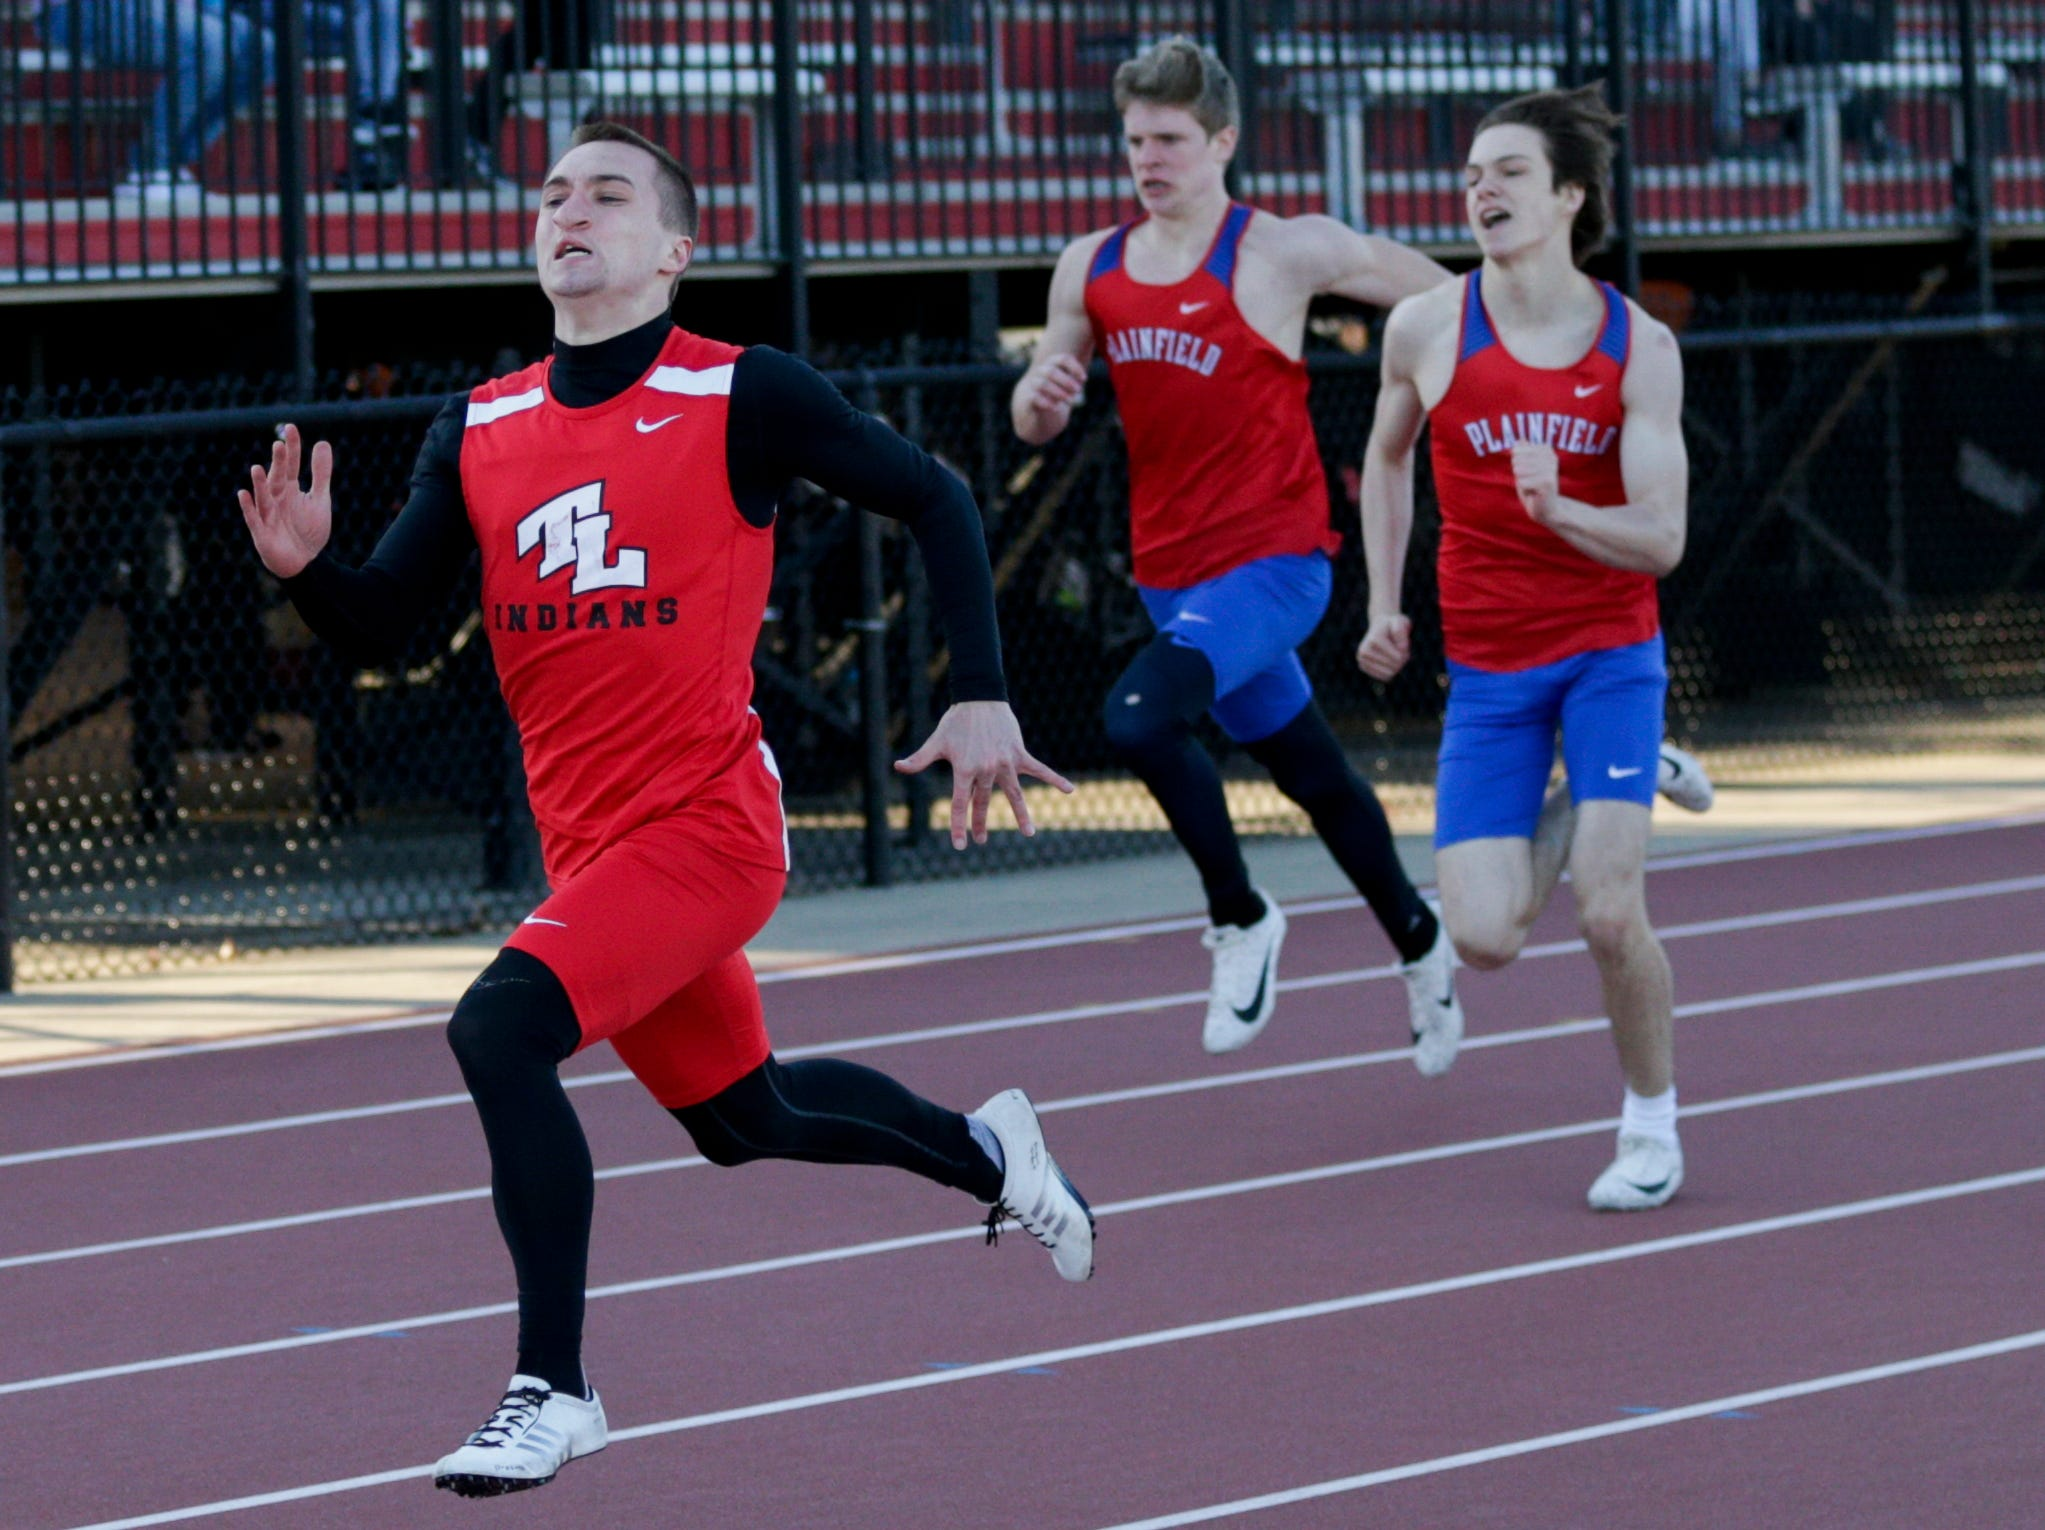 Twin Lakes' Joe Valentine competes in the men's 200 meter dash during the 2019 Sprinters Showcase, Friday, April 12, 2019, at Lafayette Jeff High School in Lafayette.